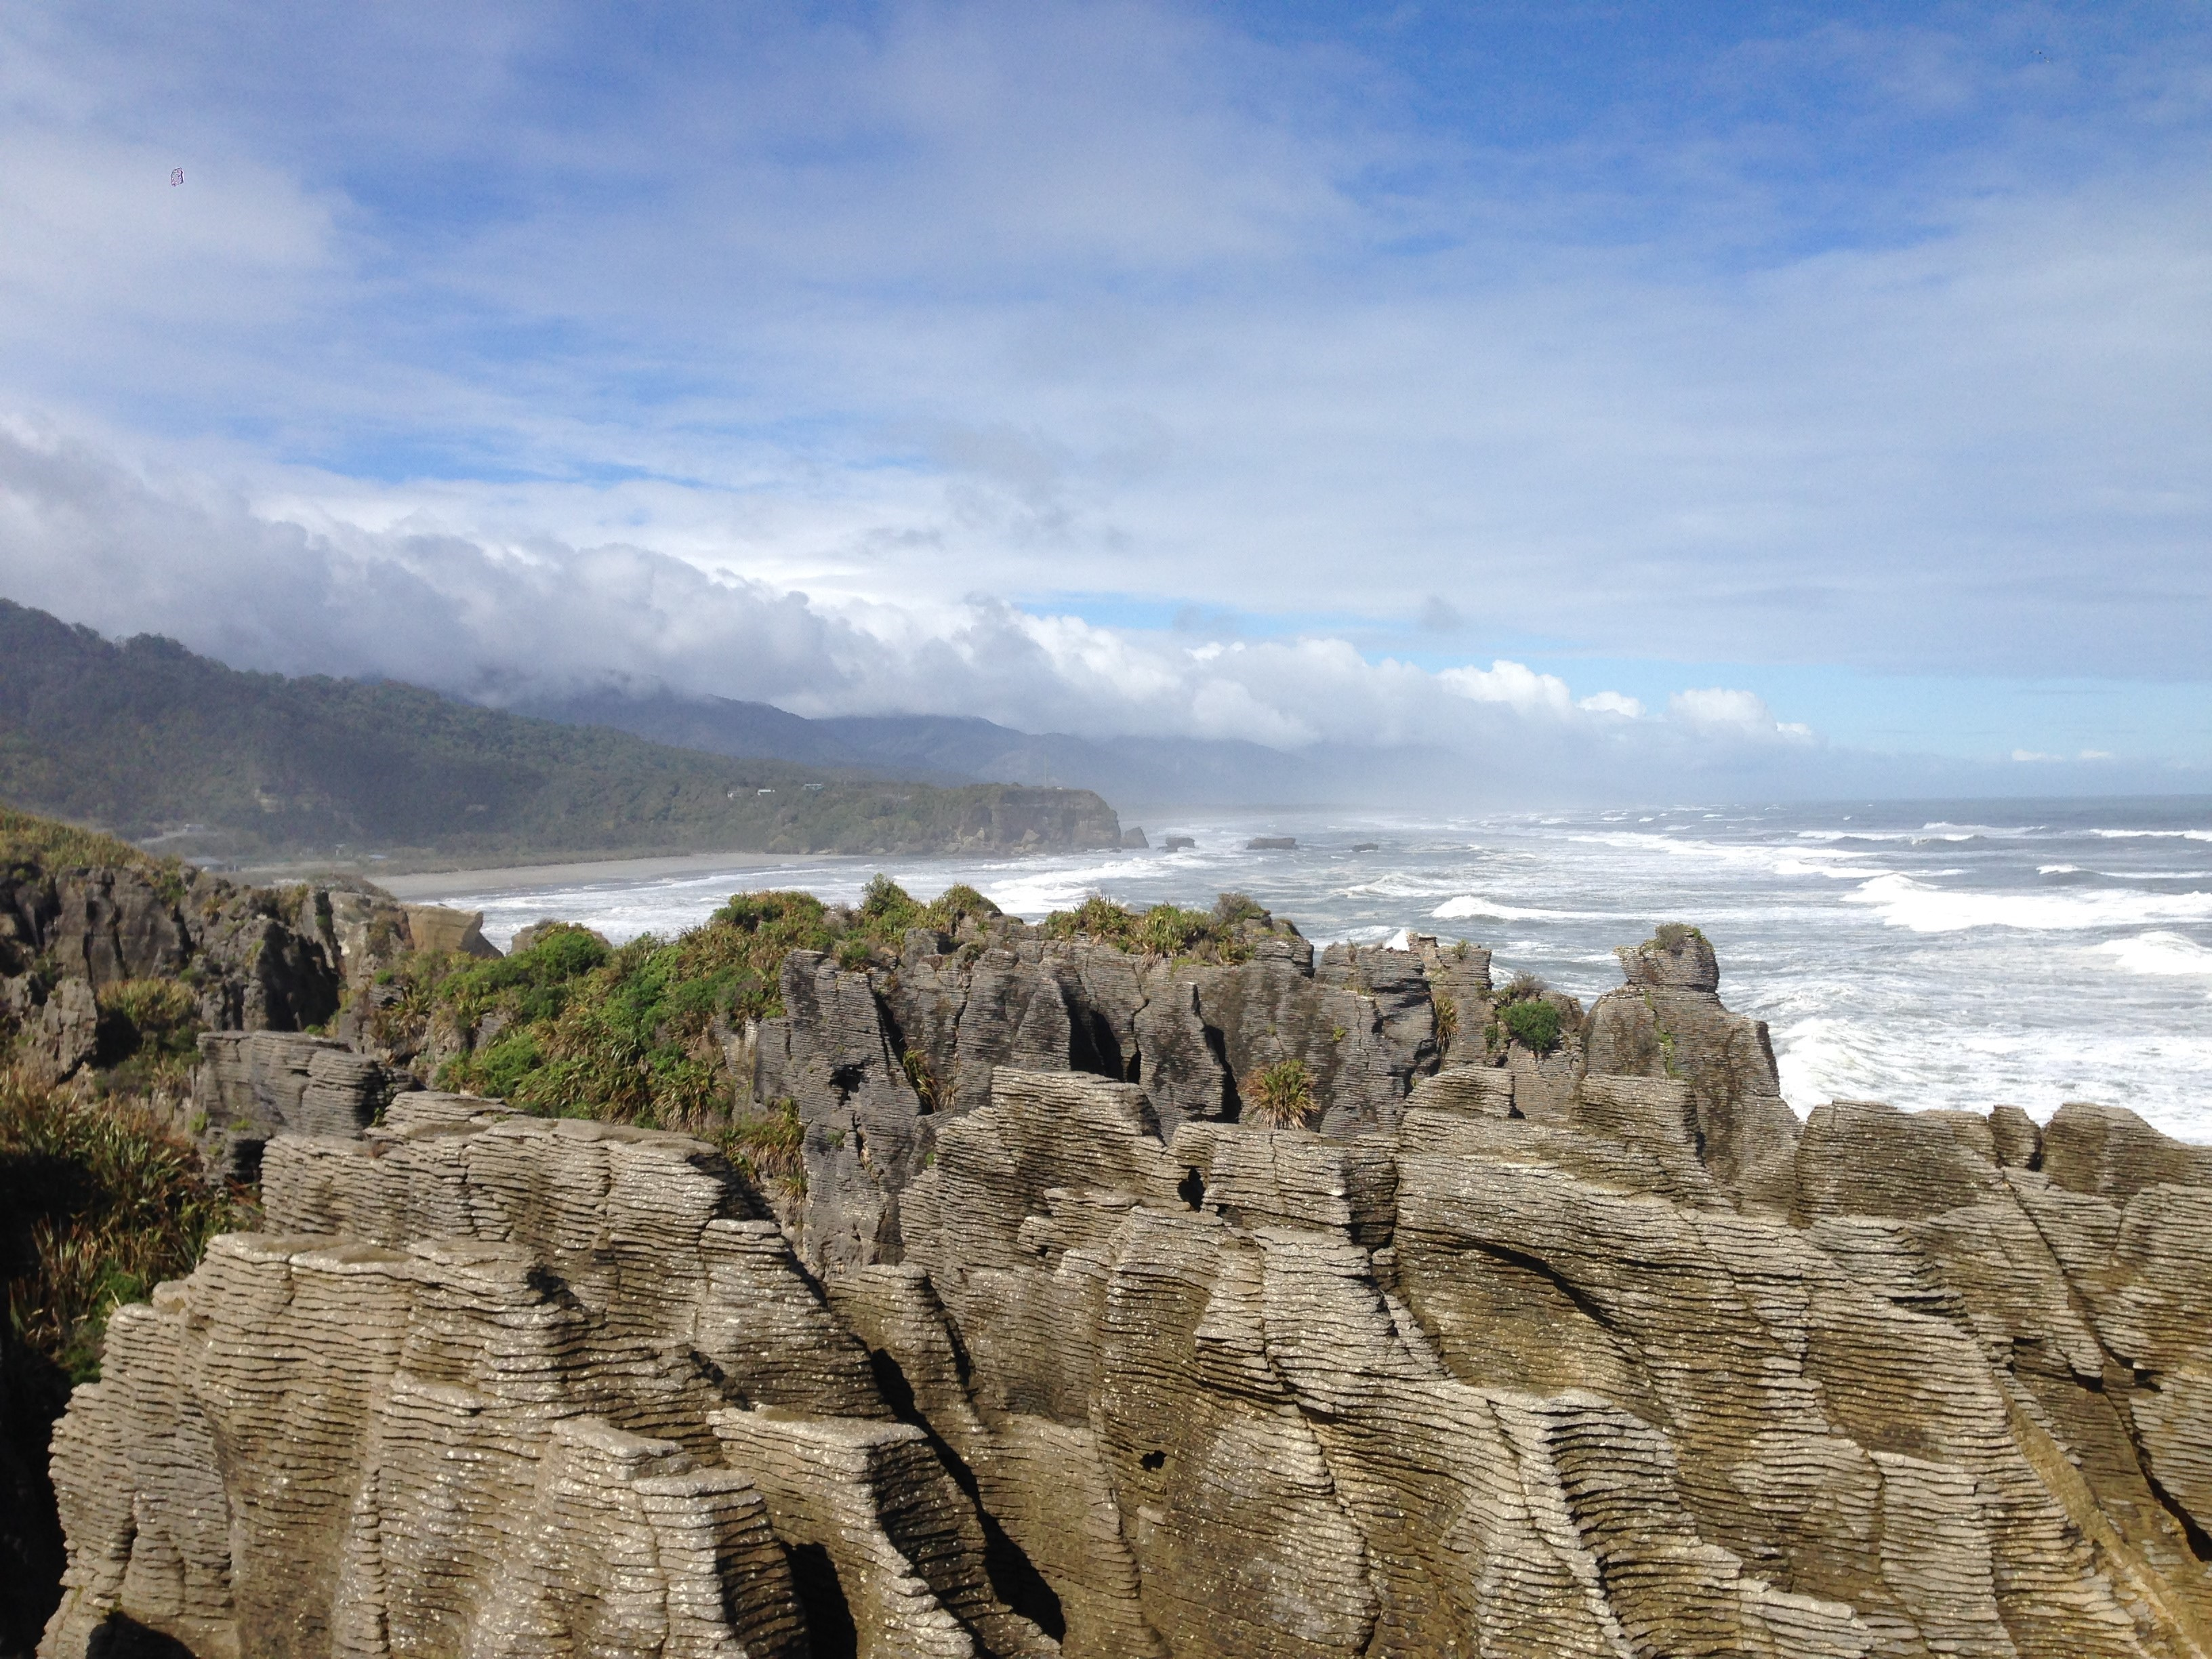 Pancake rocks, new zealand, south island, west coast, coast, rocks